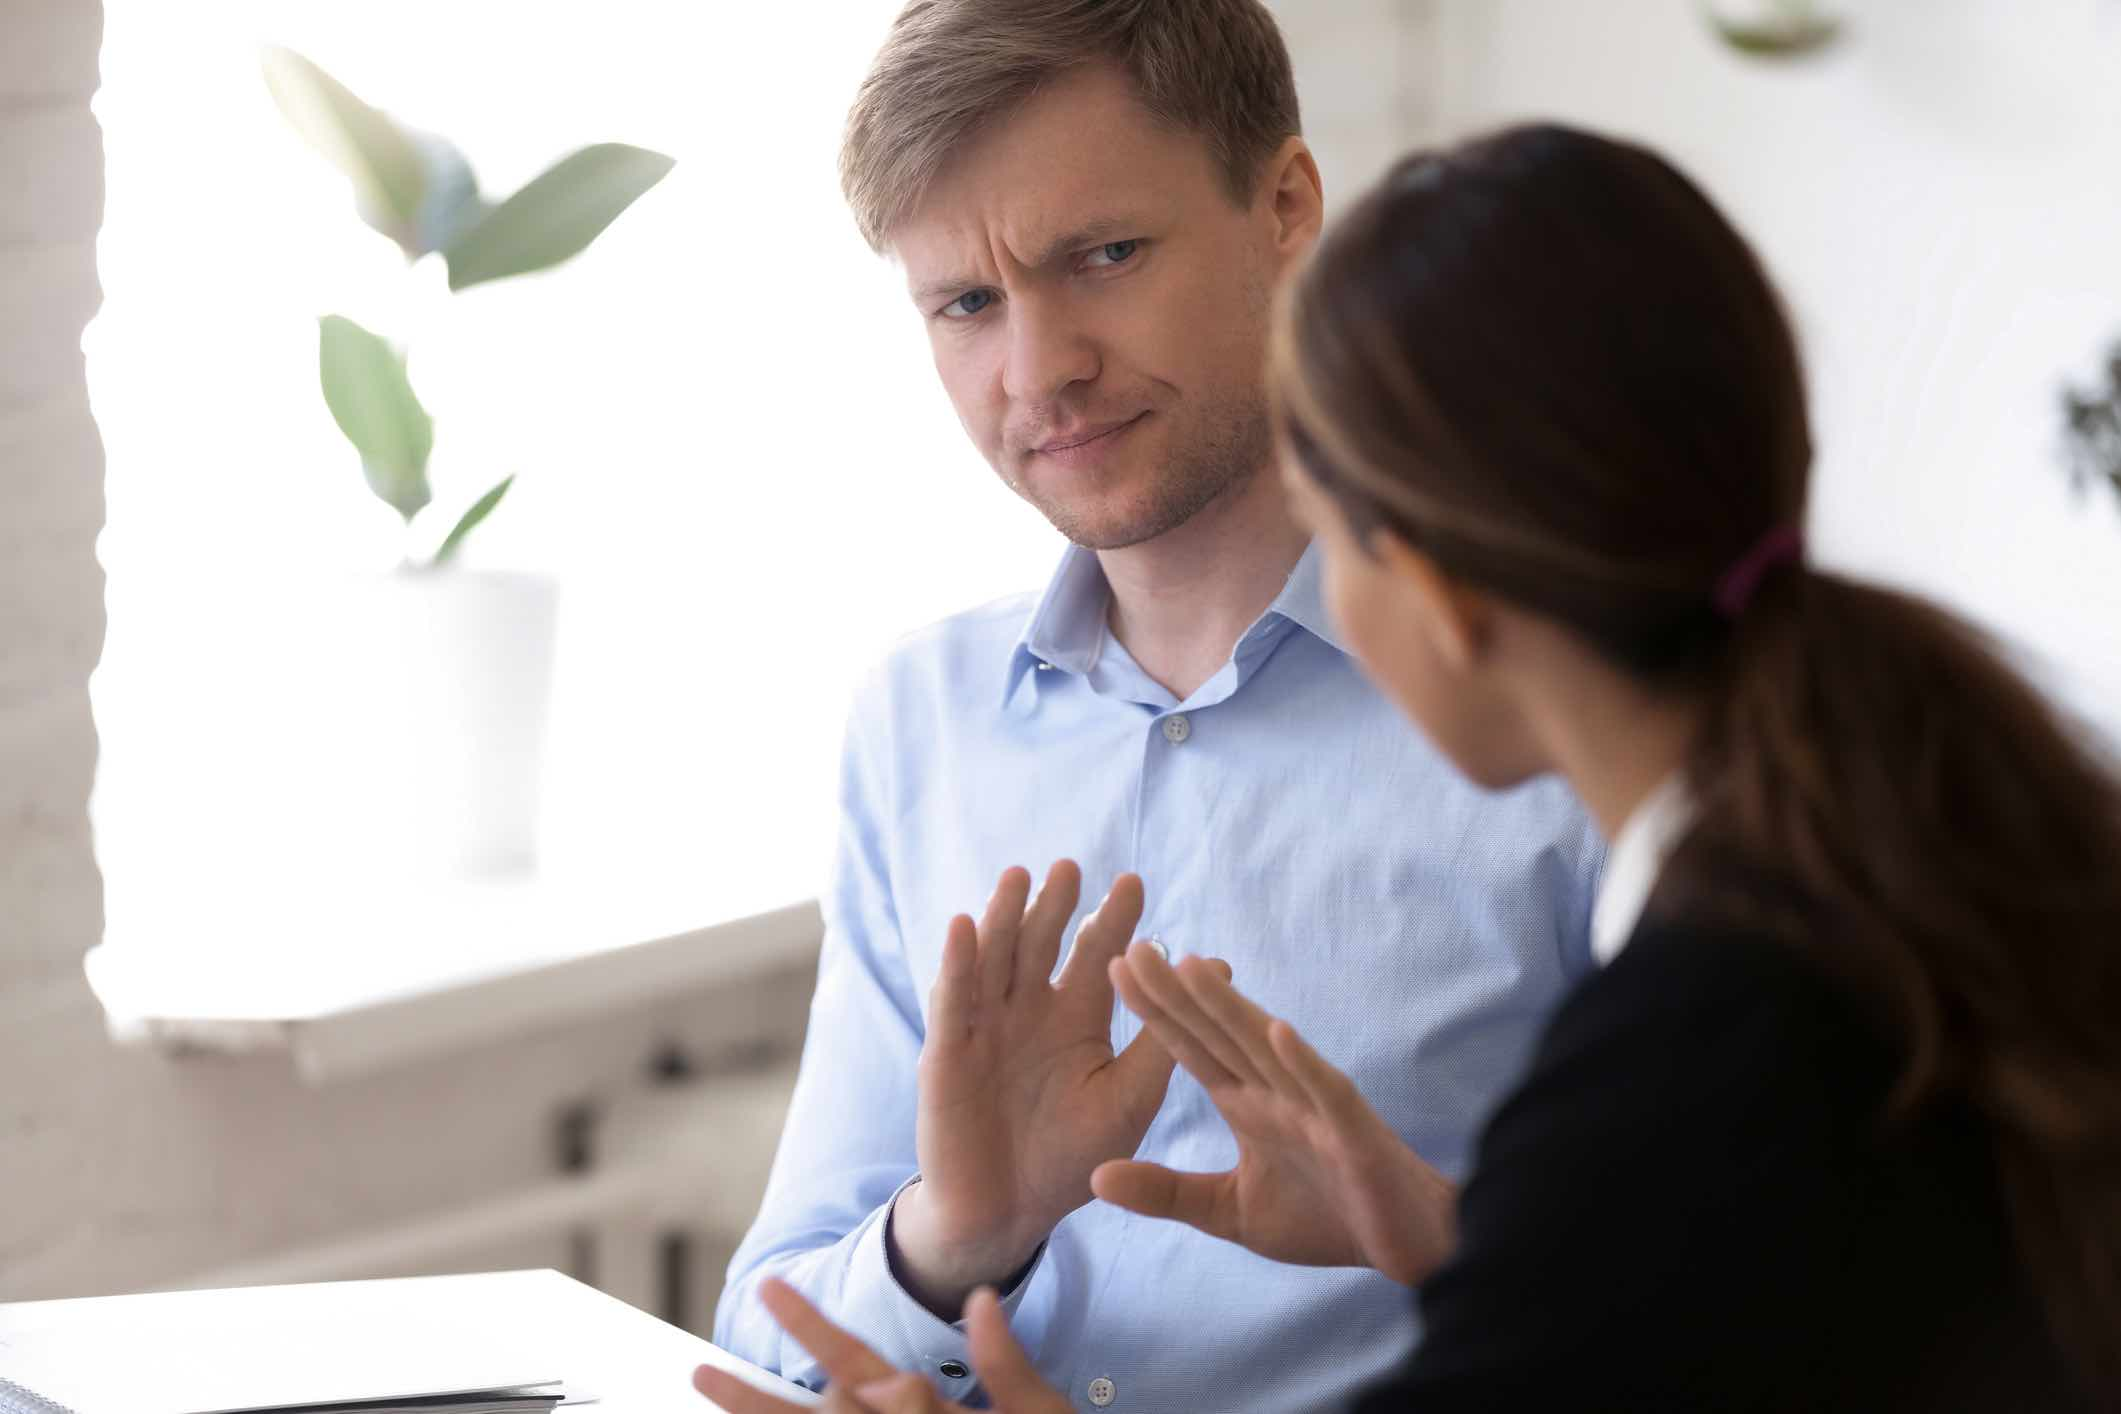 He's Just Not That Into You: Signs Your Boss Doesn't Care